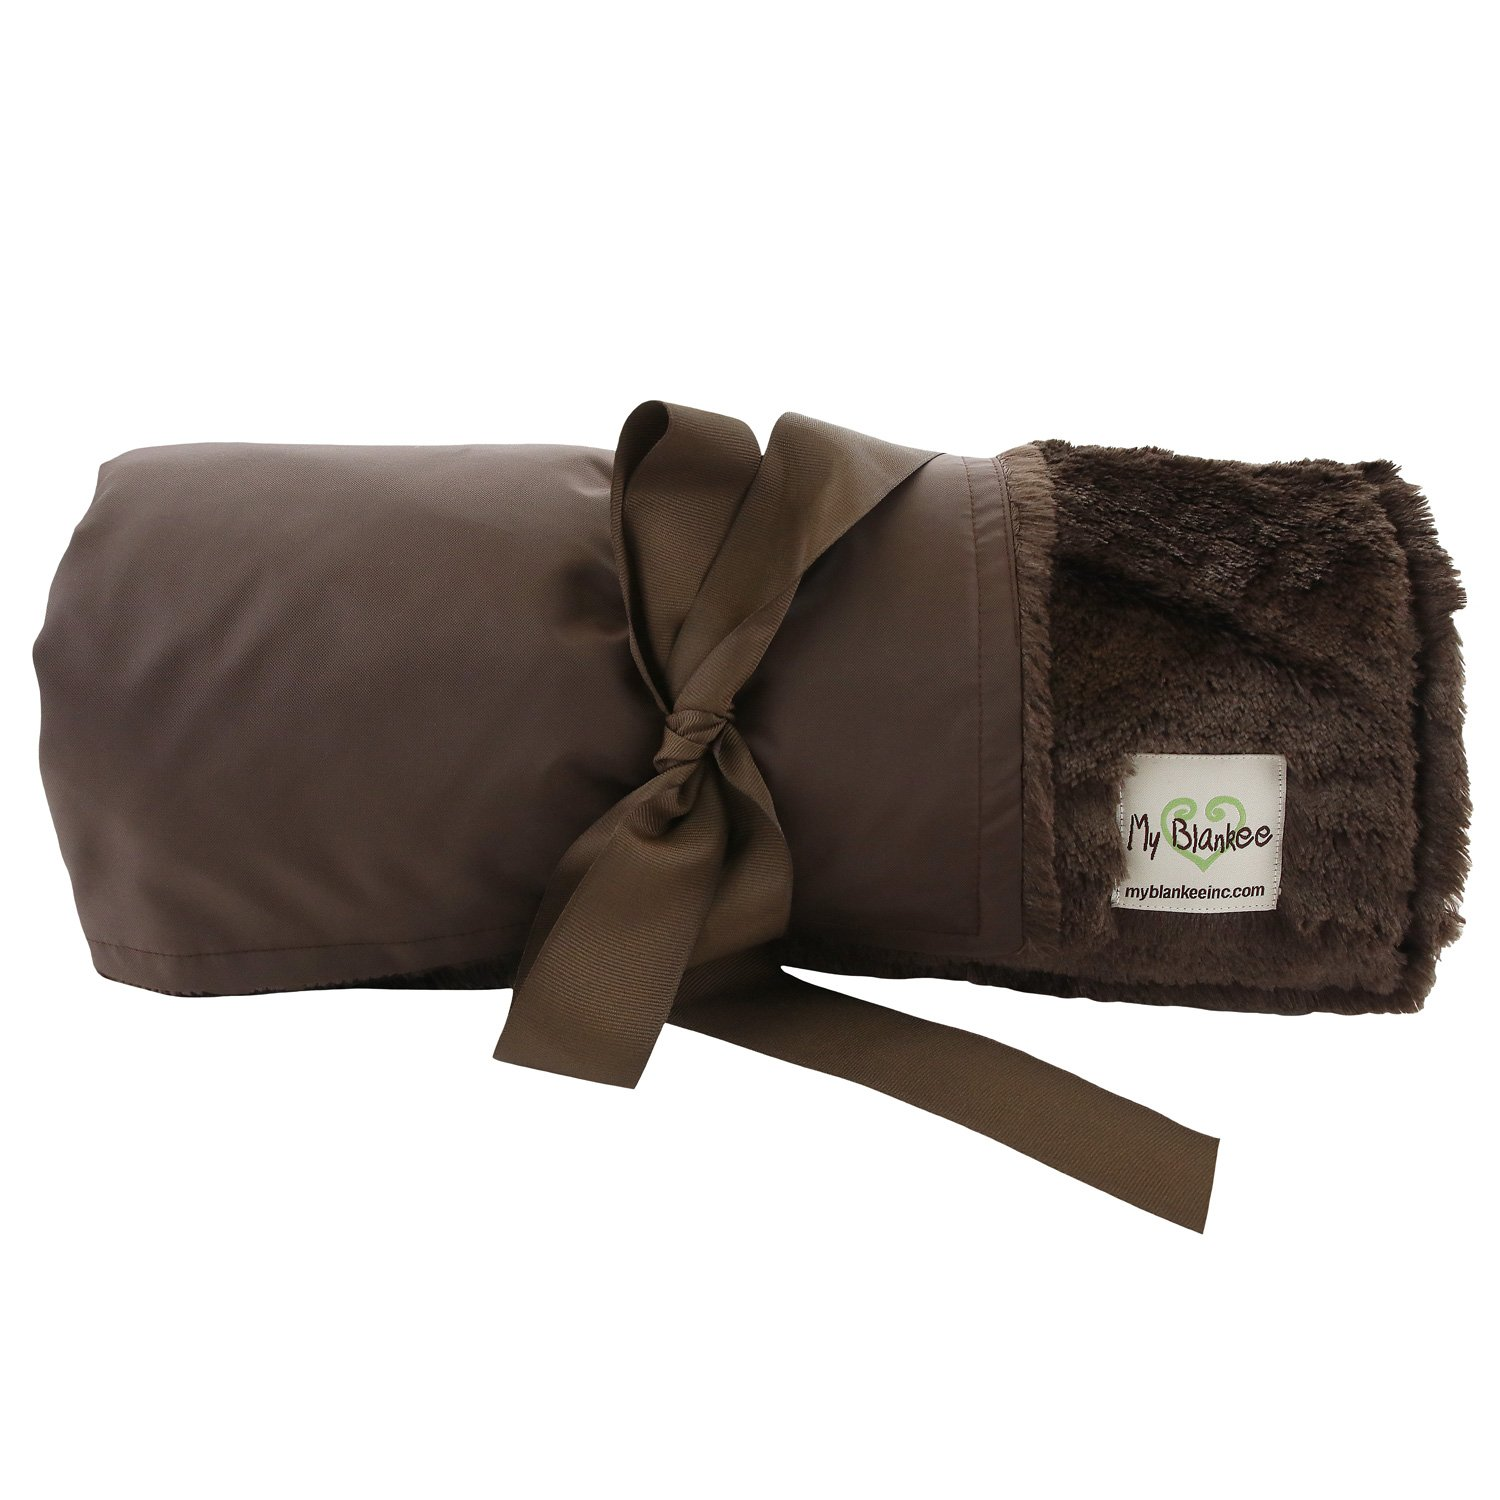 My Blankee Extra Large Picnic & Outdoor Blanket Warm and Soft Bare skin Luxe with Waterproof Backing, Brown, 59'' X 85''